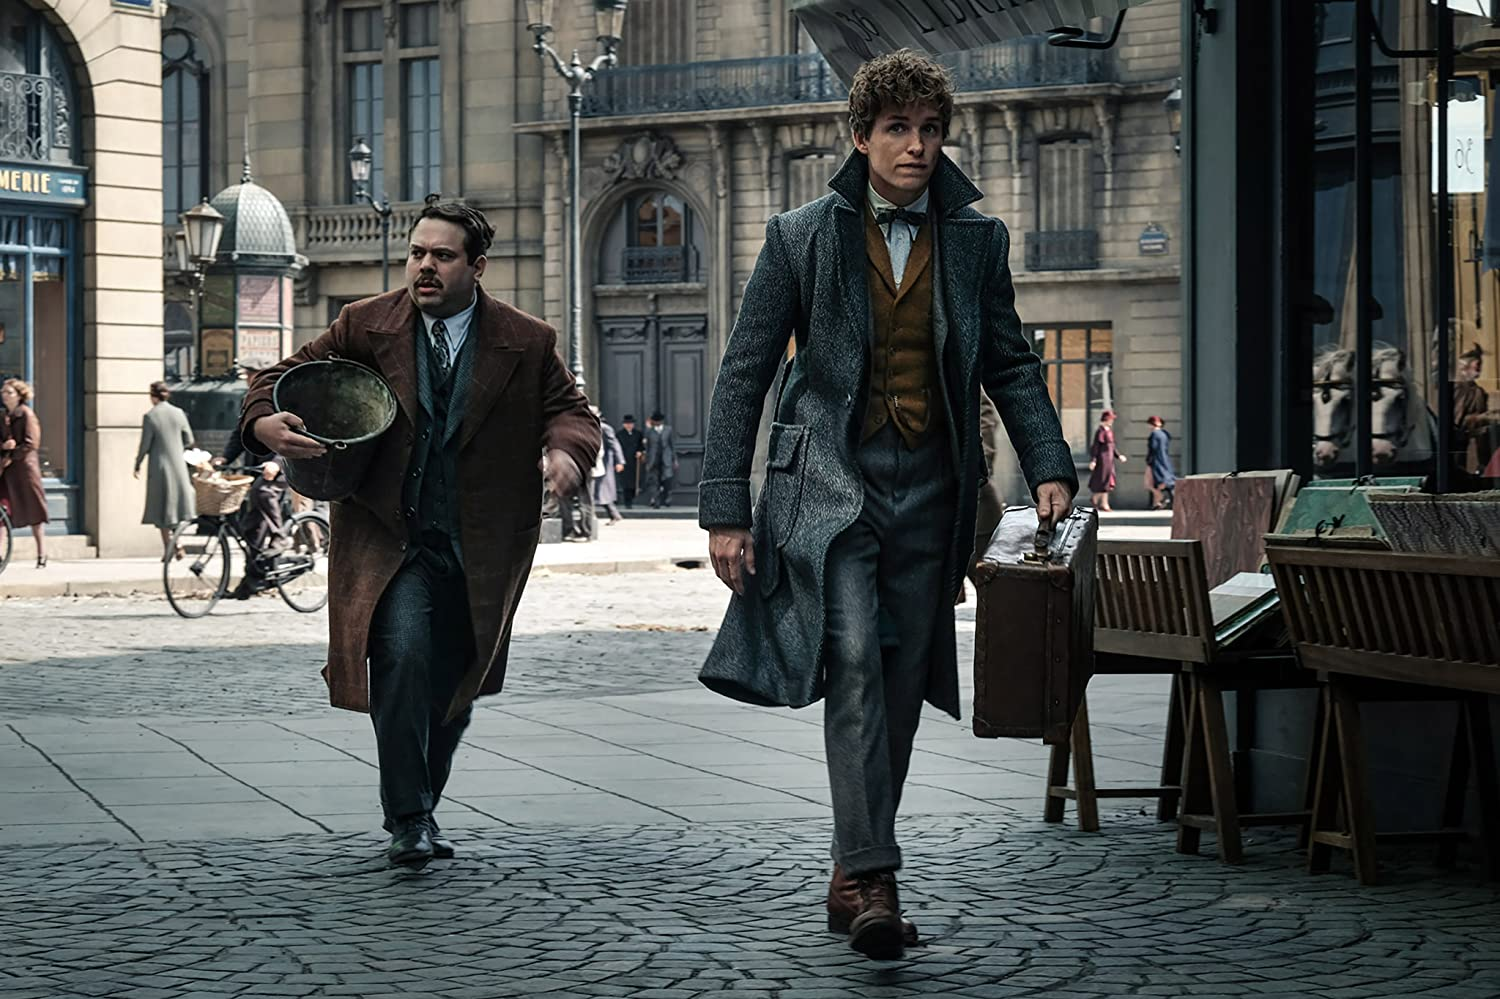 Dan Fogler and Eddie Redmayne in Fantastic Beasts: The Crimes of Grindelwald (2018)